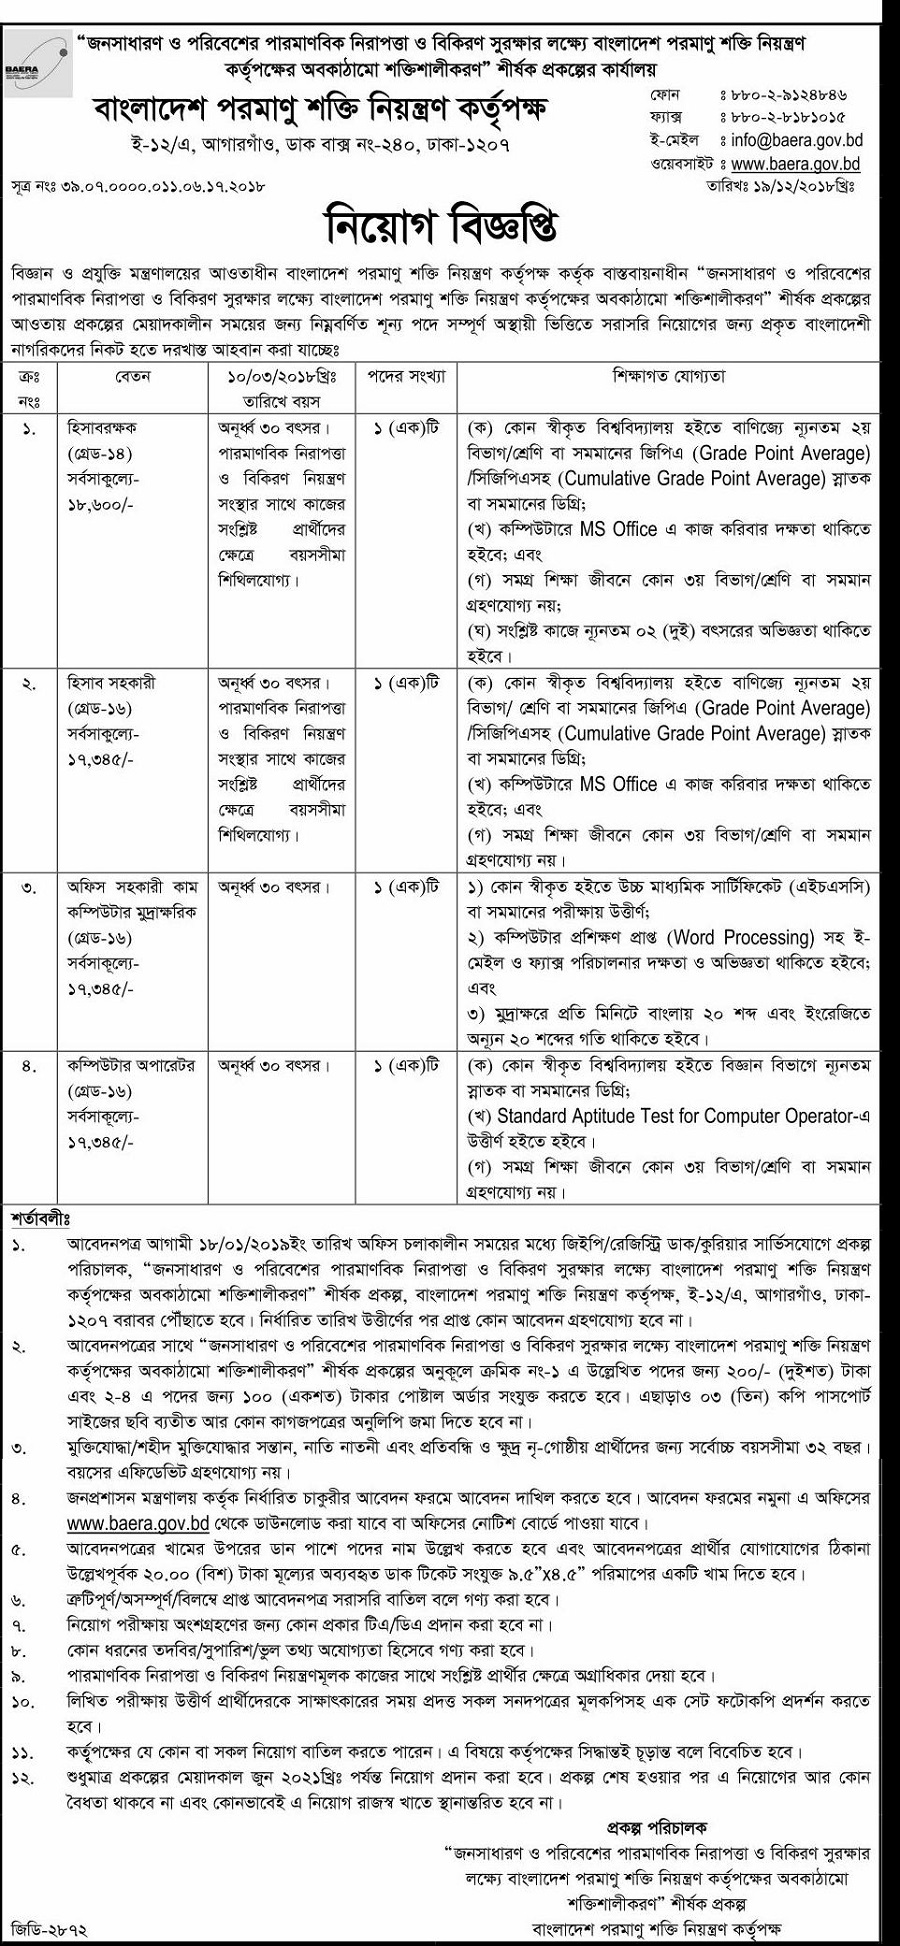 desh-Atomic-Energy-Commission-Job-Circular Job Application Form For Website on small business job application form, generic job application form, for job interview, amazon job application form, starbucks job application form,